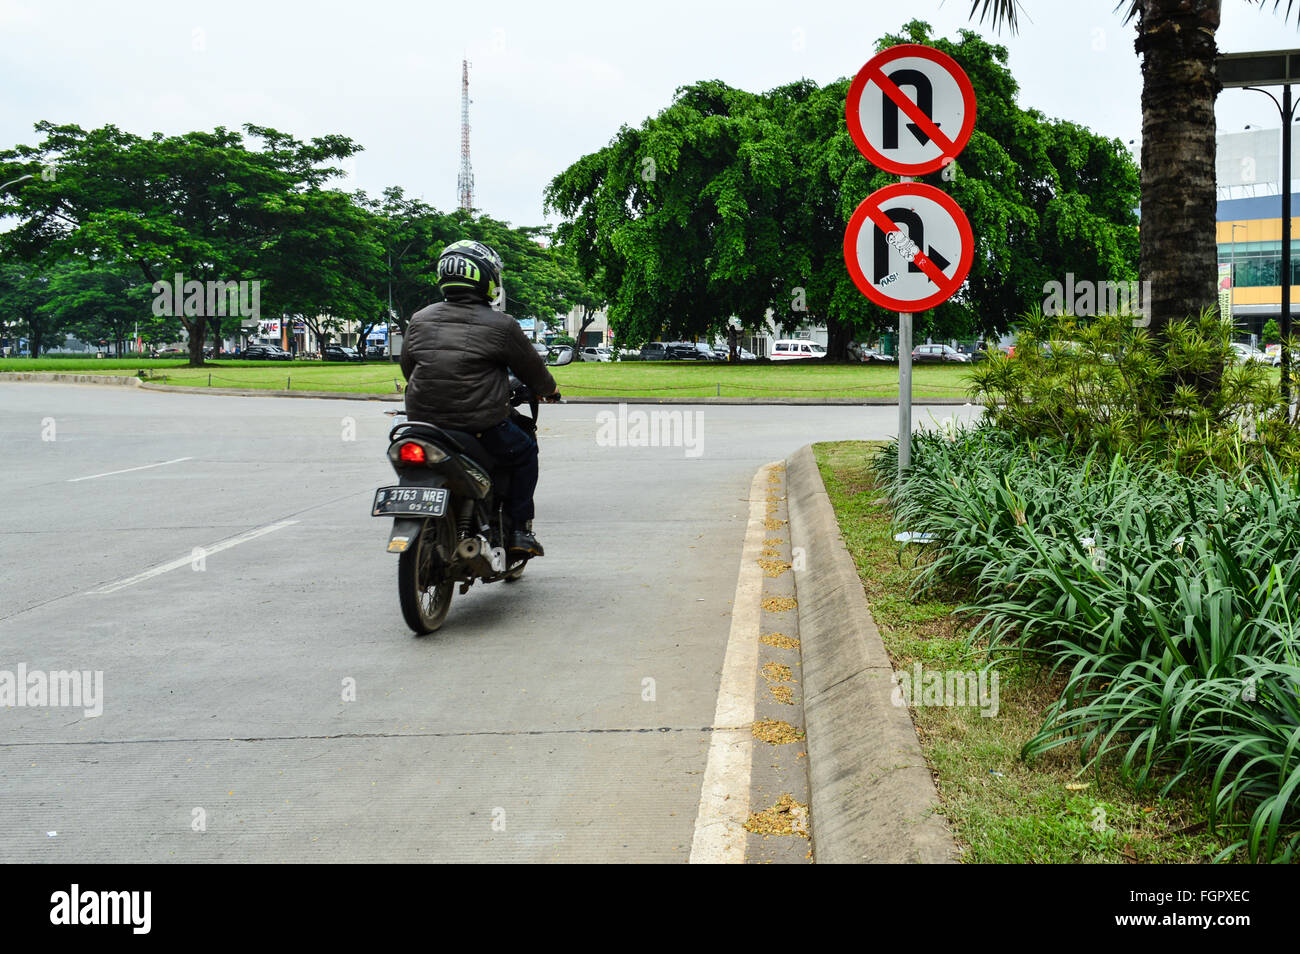 Rider going wrong way in Jakarta, Indonesia - Stock Image